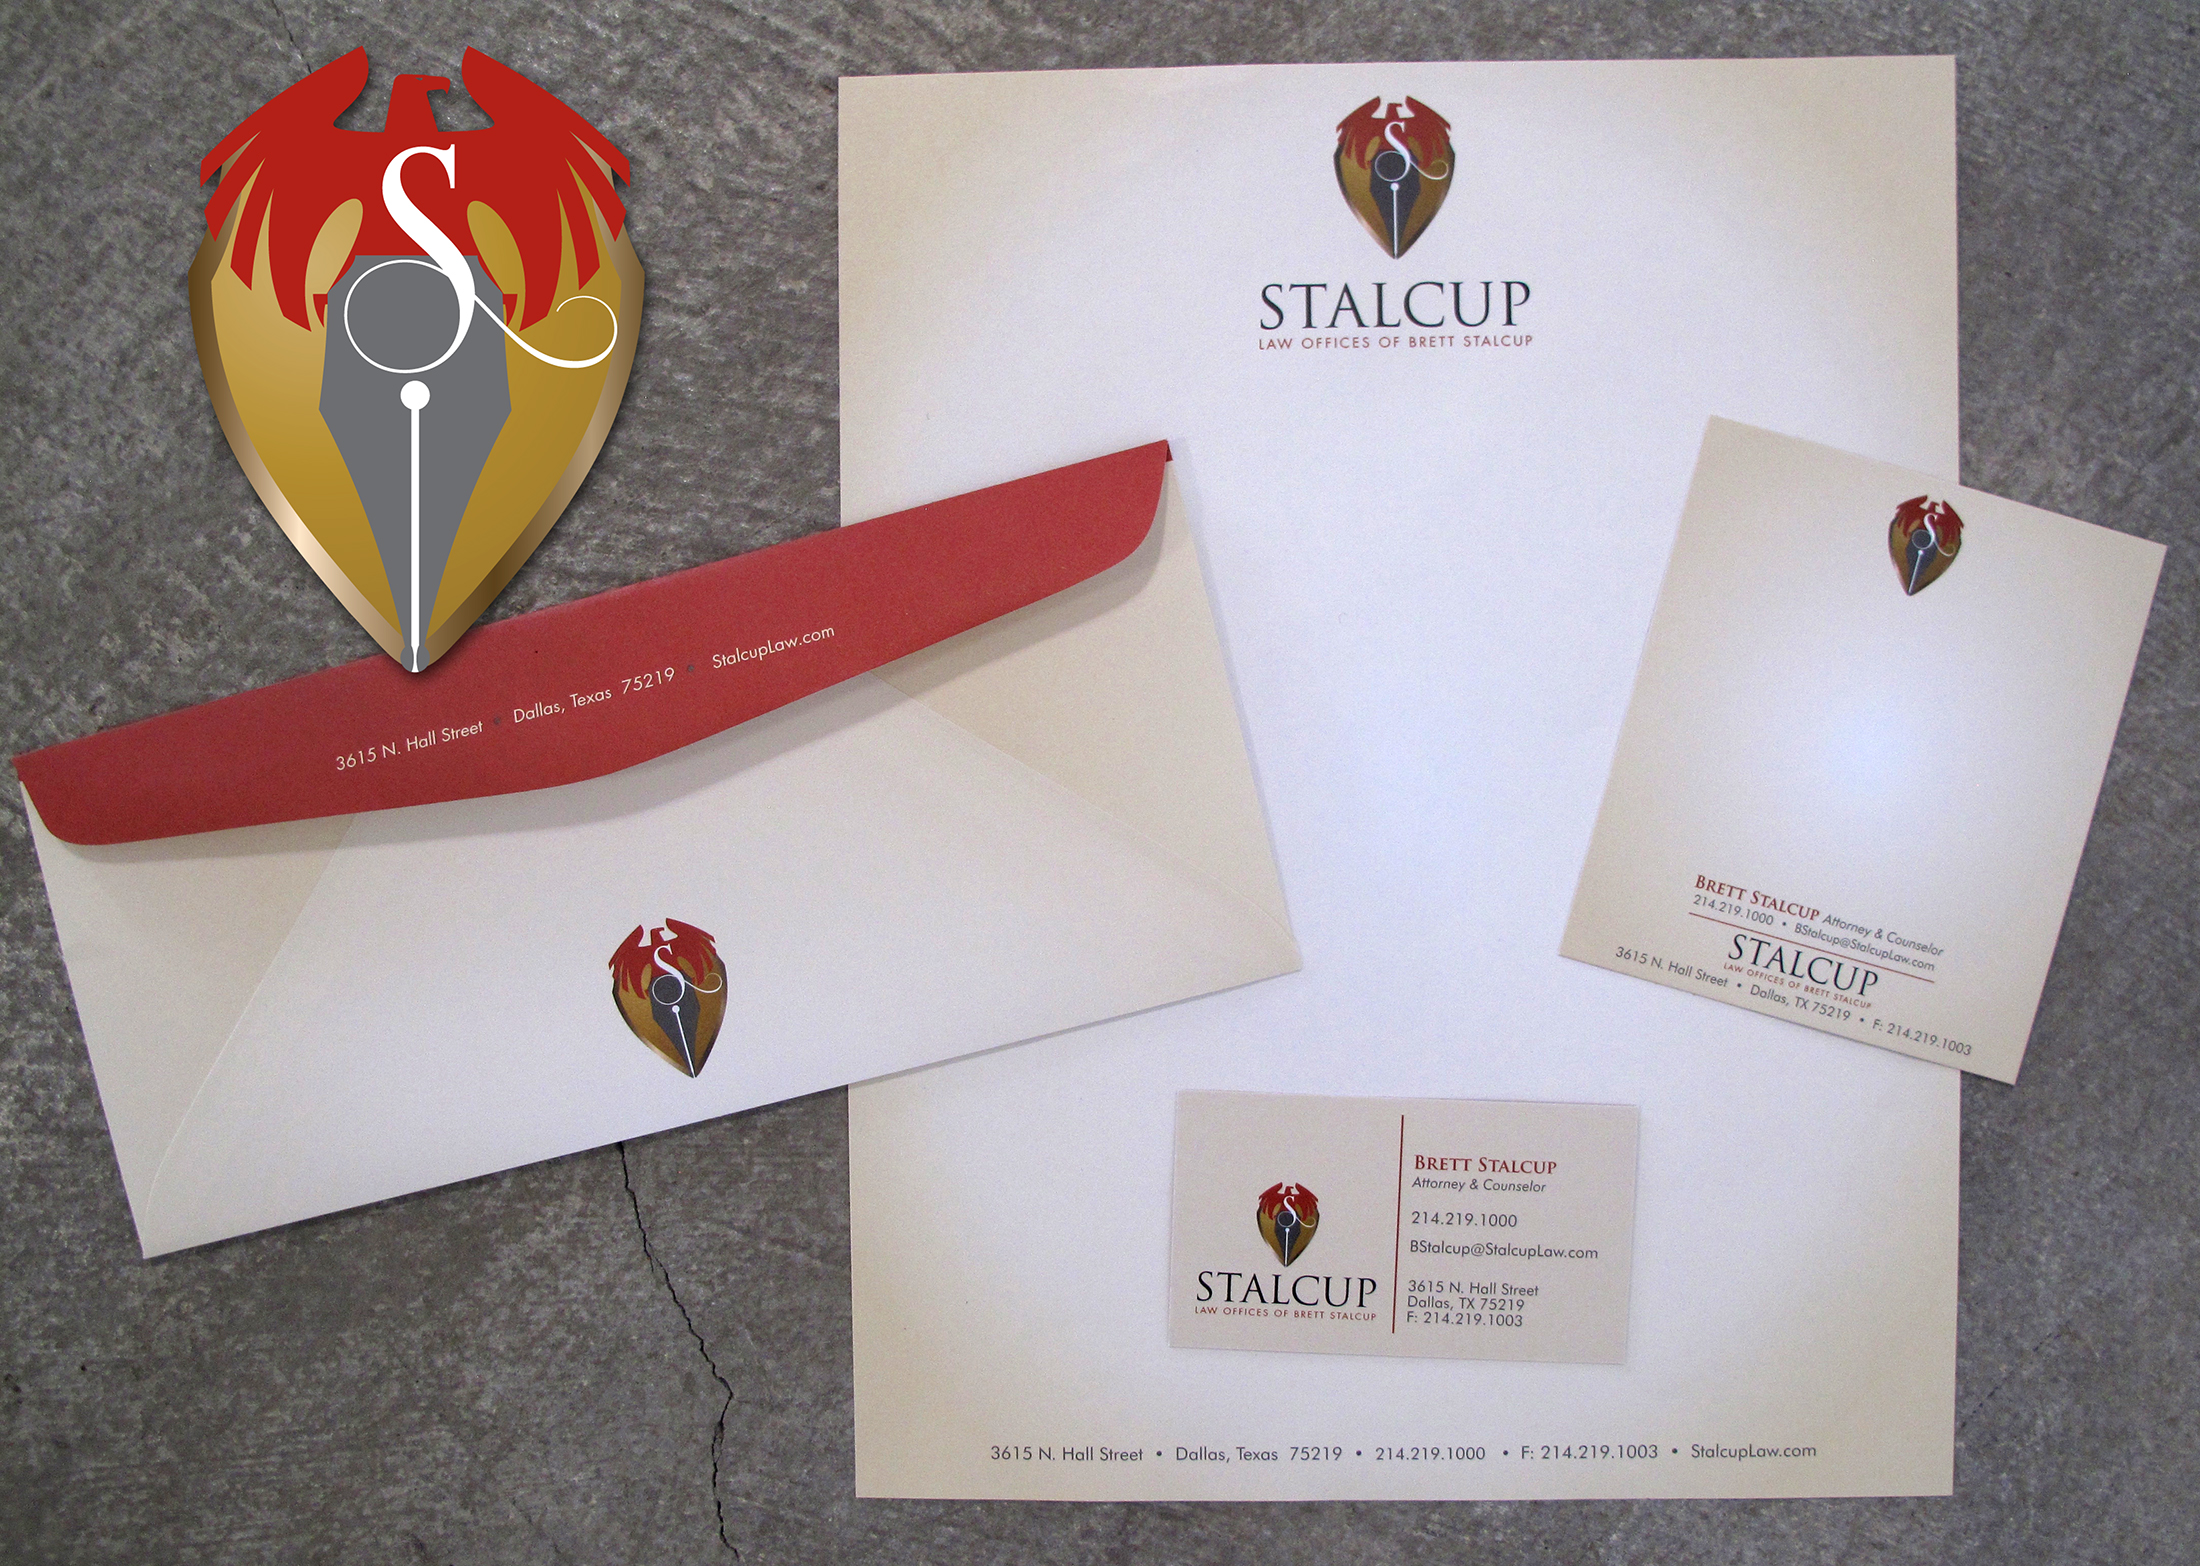 Stalcup Law Firm